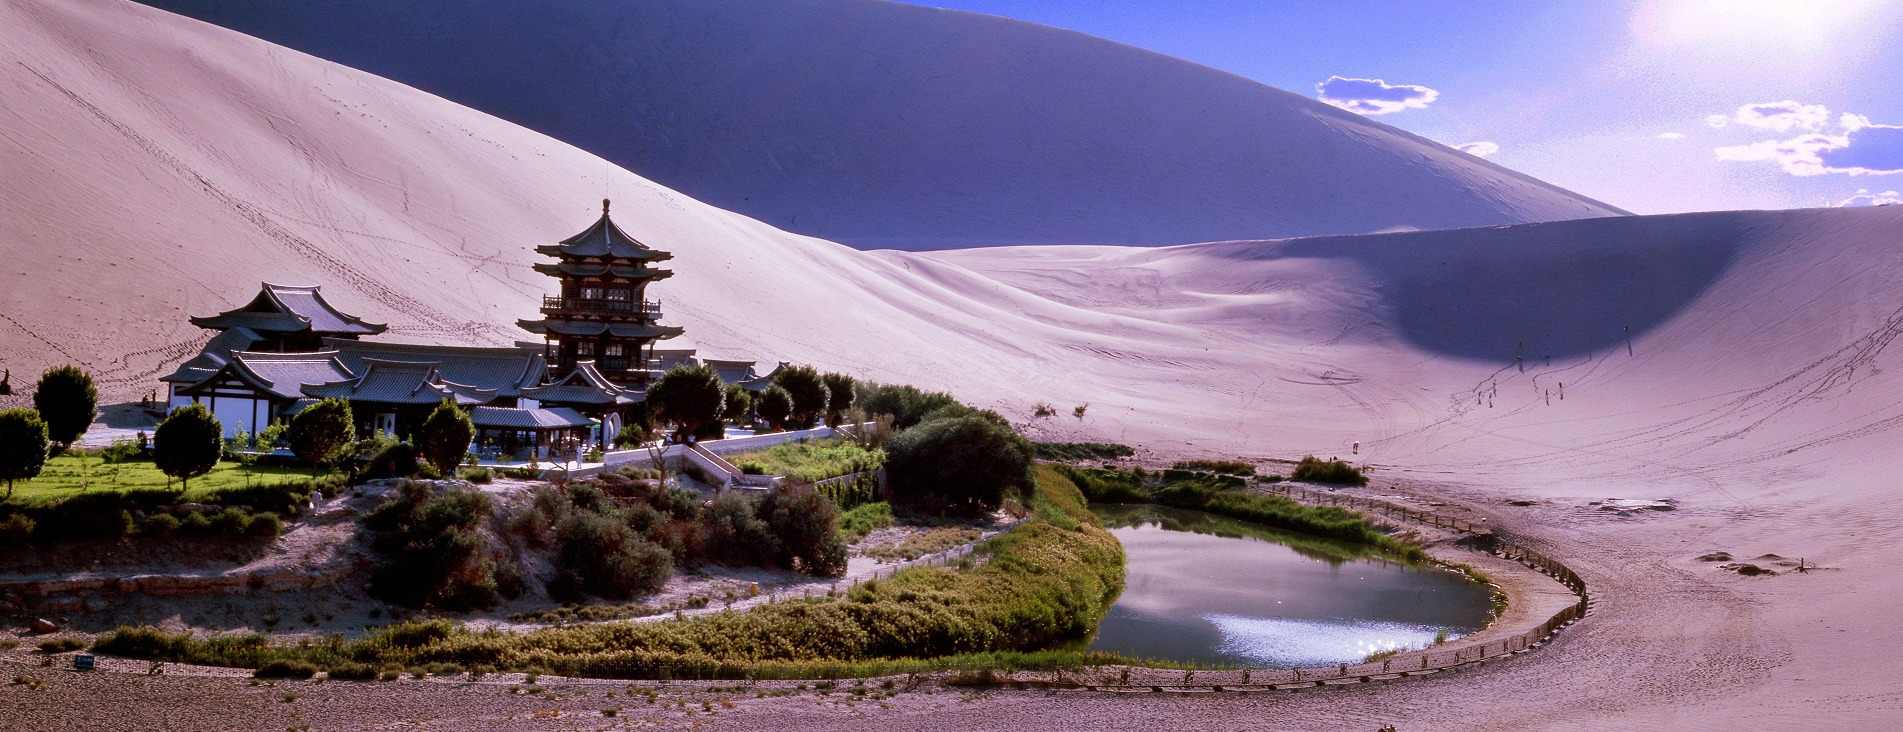 Mingha Sand Dunes and Crescent Moon Spring